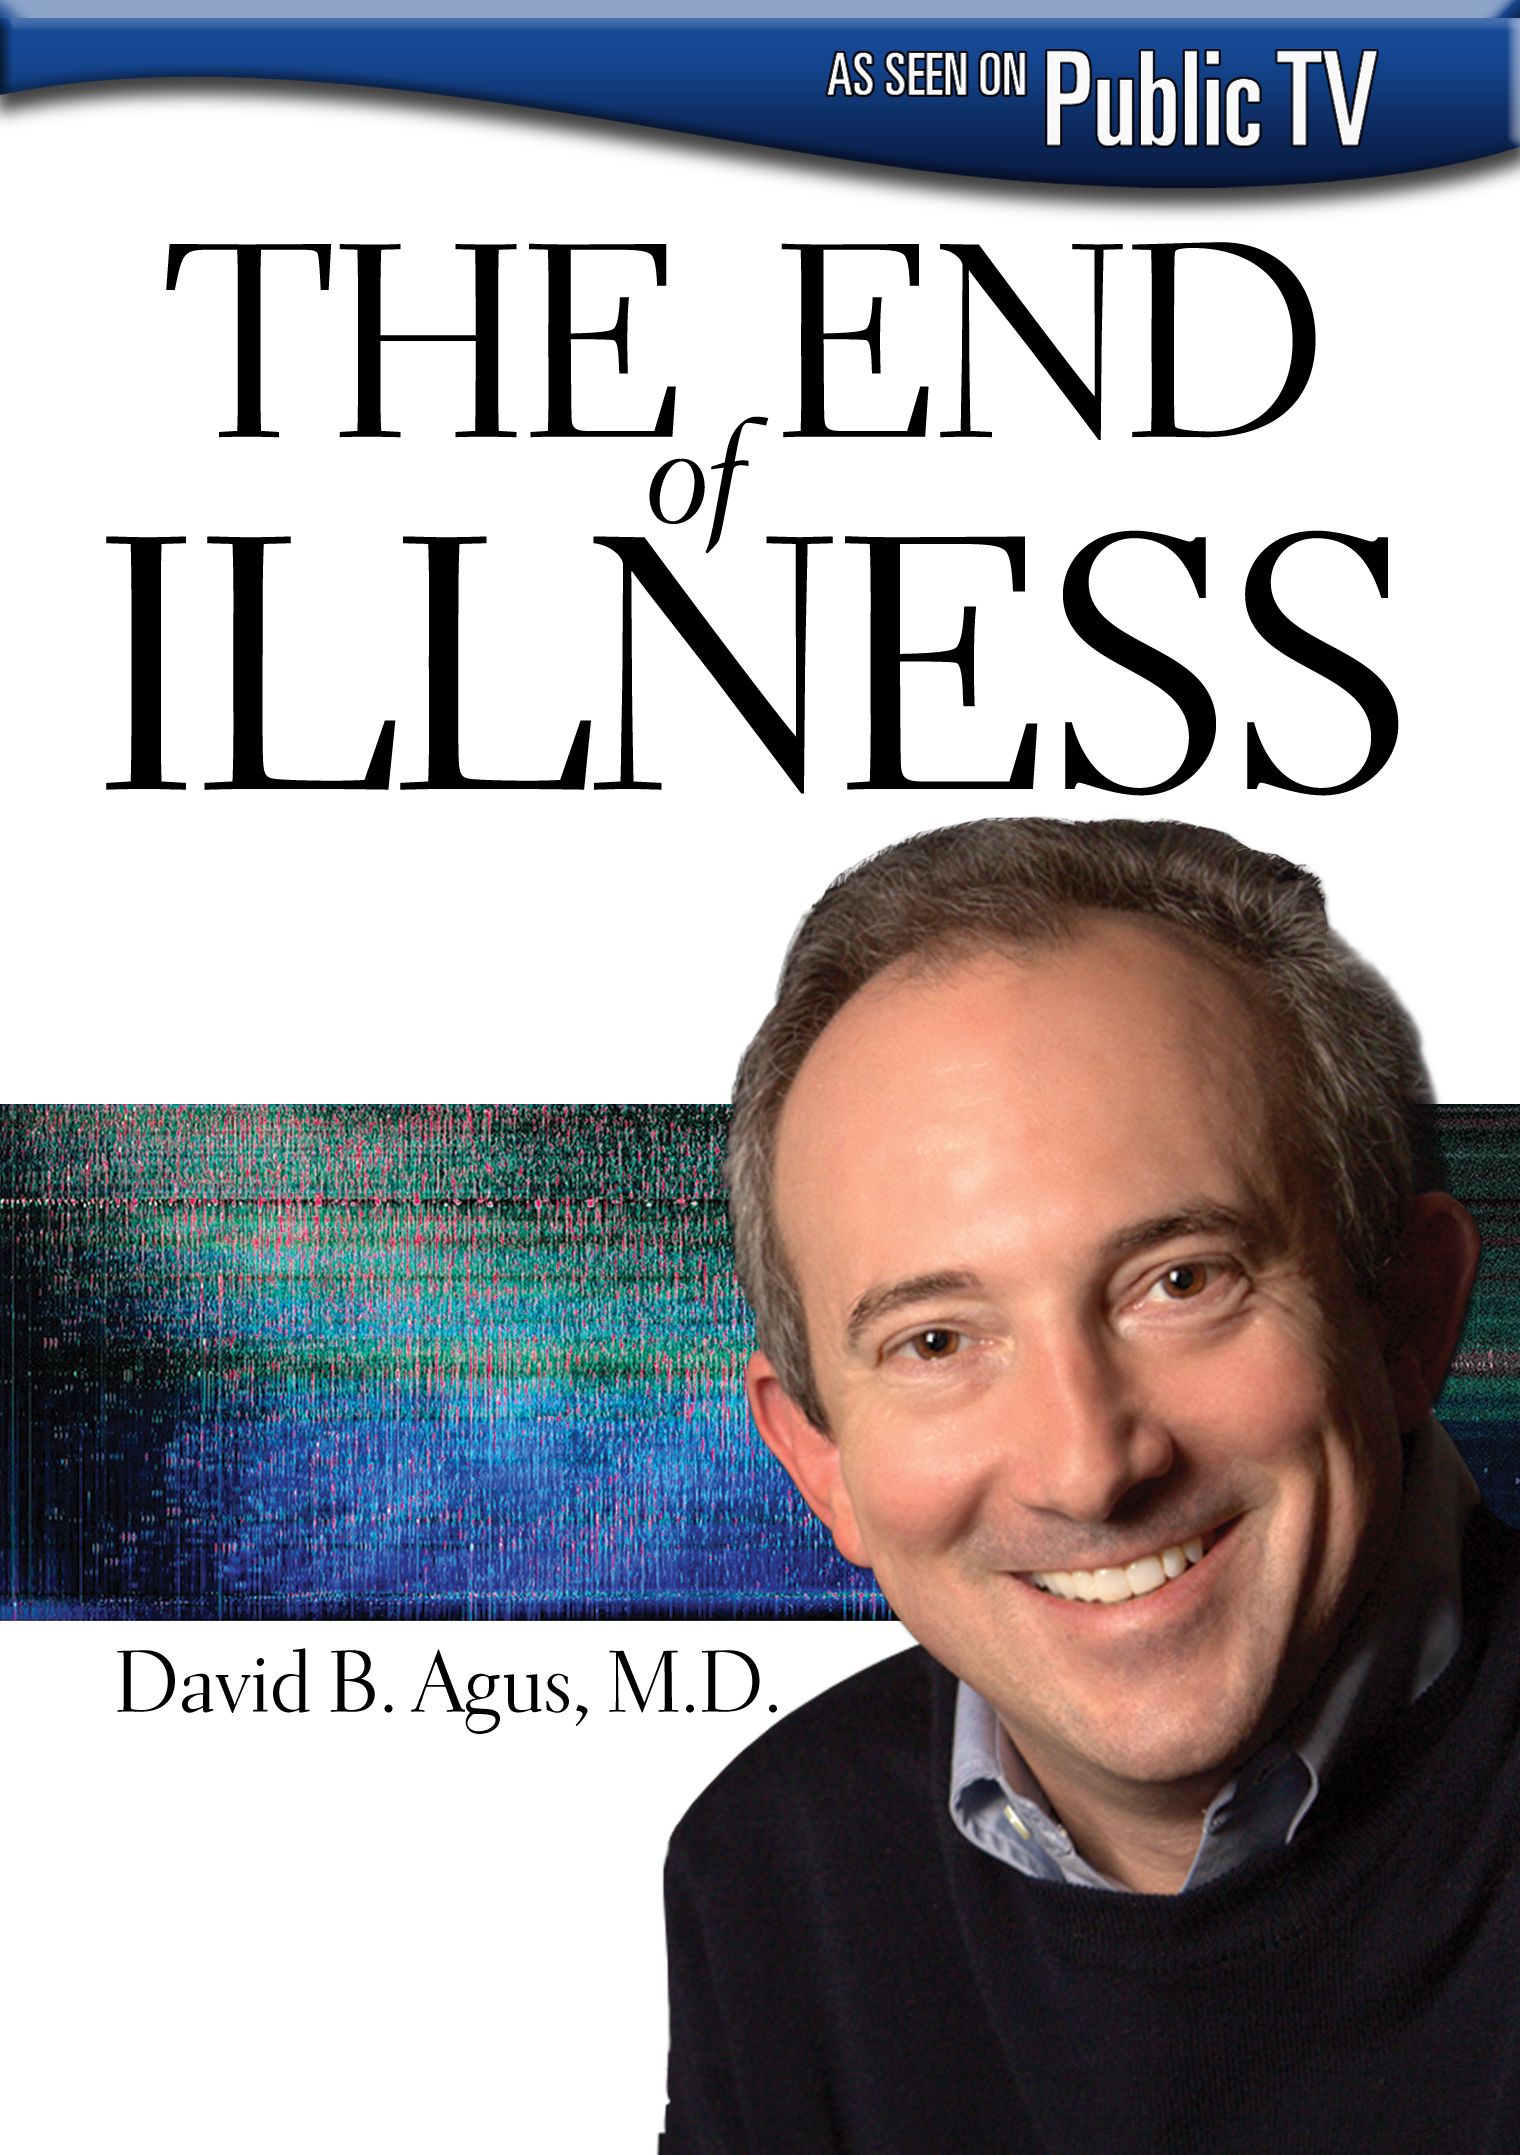 The End of Illness With Dr. David Agus